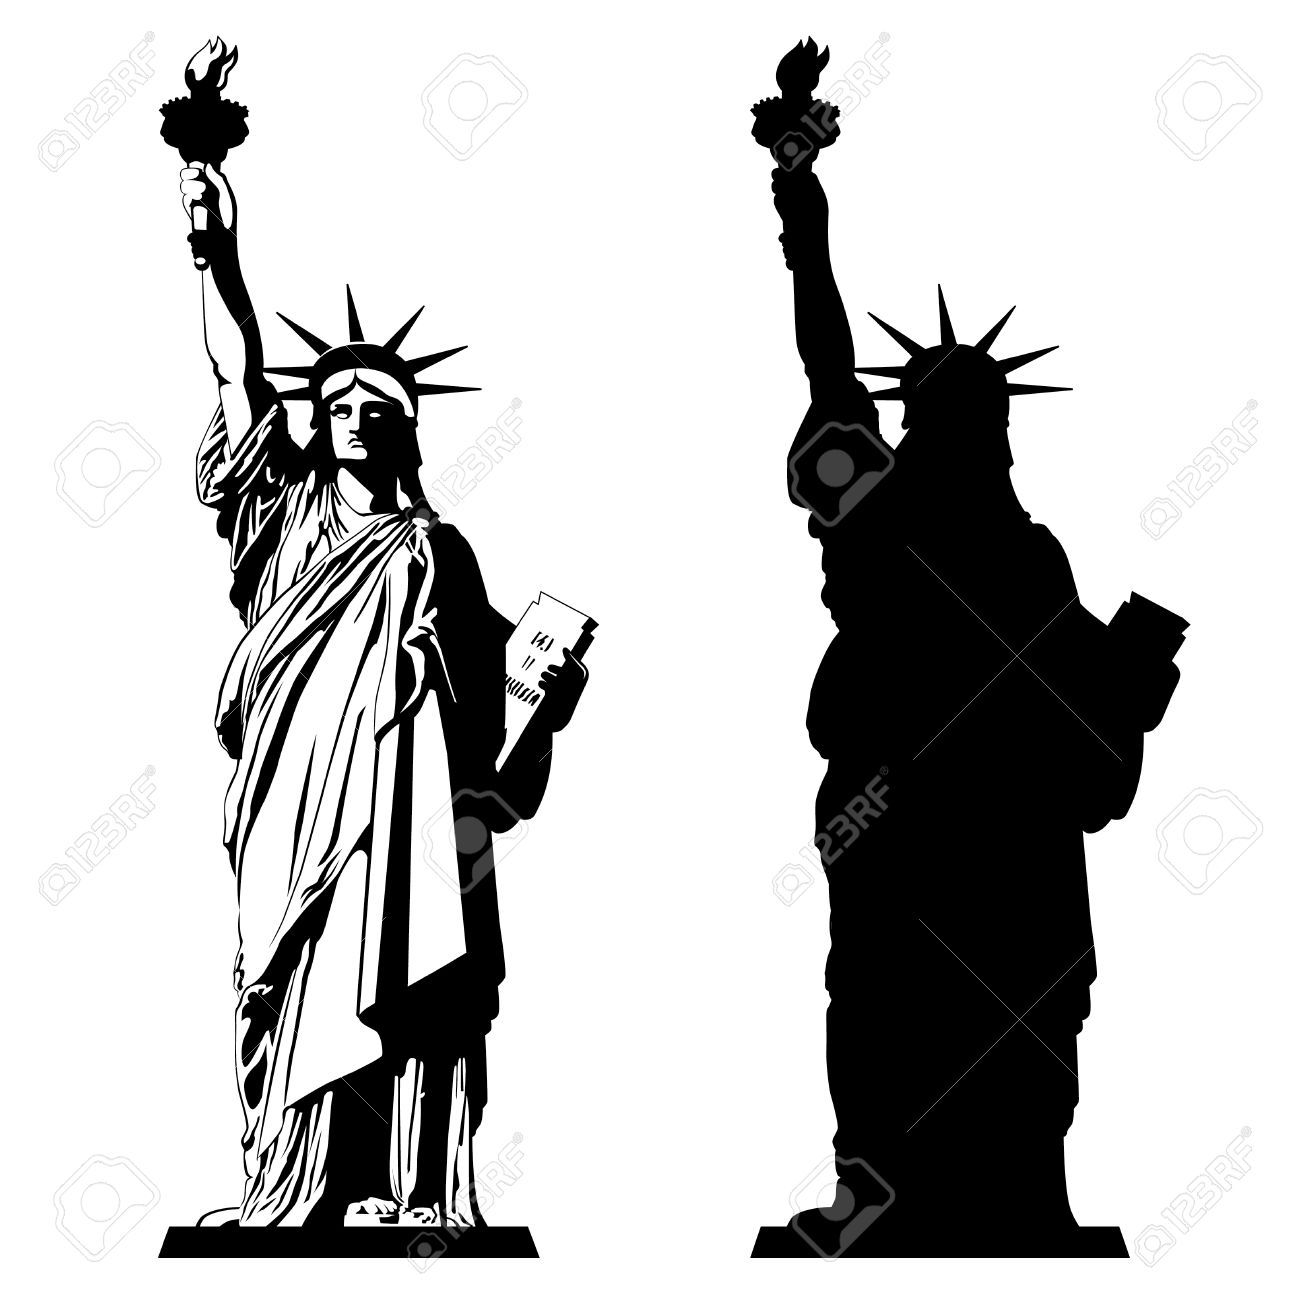 Give me liberty clipart black and white jpg Statue of liberty clipart black and white 1 » Clipart Portal jpg